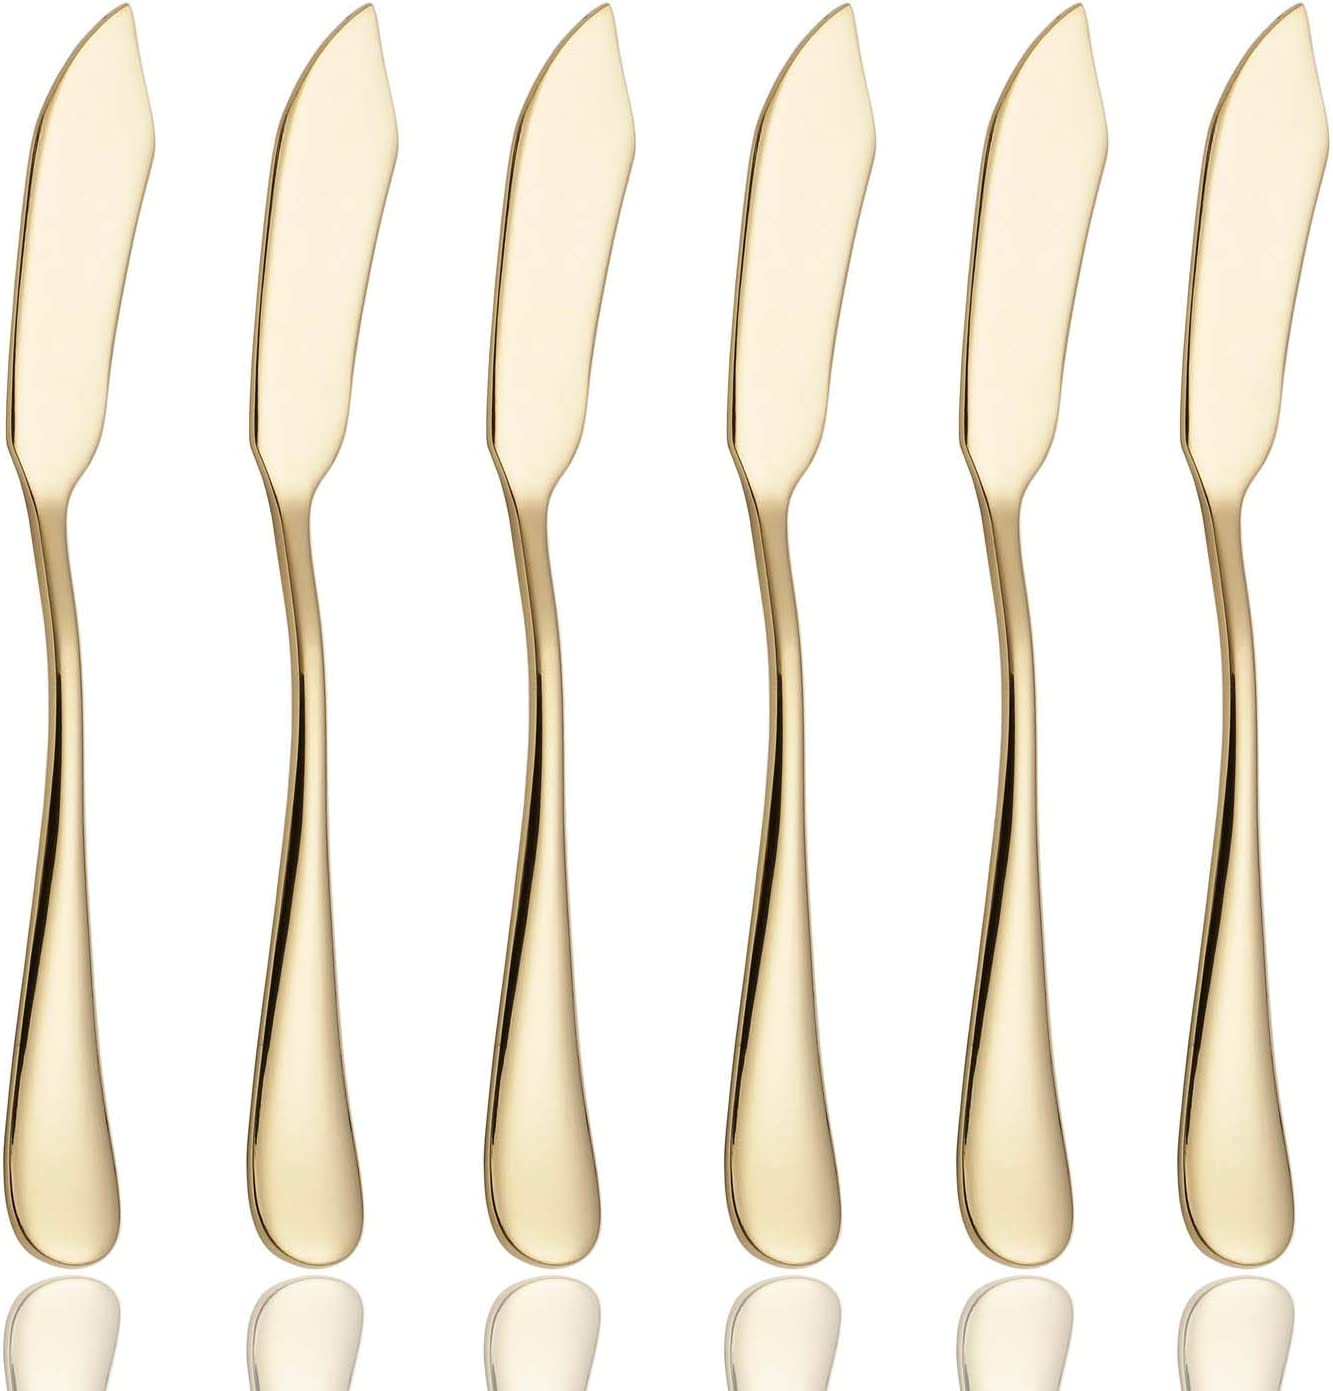 6 Piece Butter Knife 6-inch Stainless Steel Cheese Spreader Knives Set Table Silverware Dishwasher Safe, Packs of 6 (Gold)